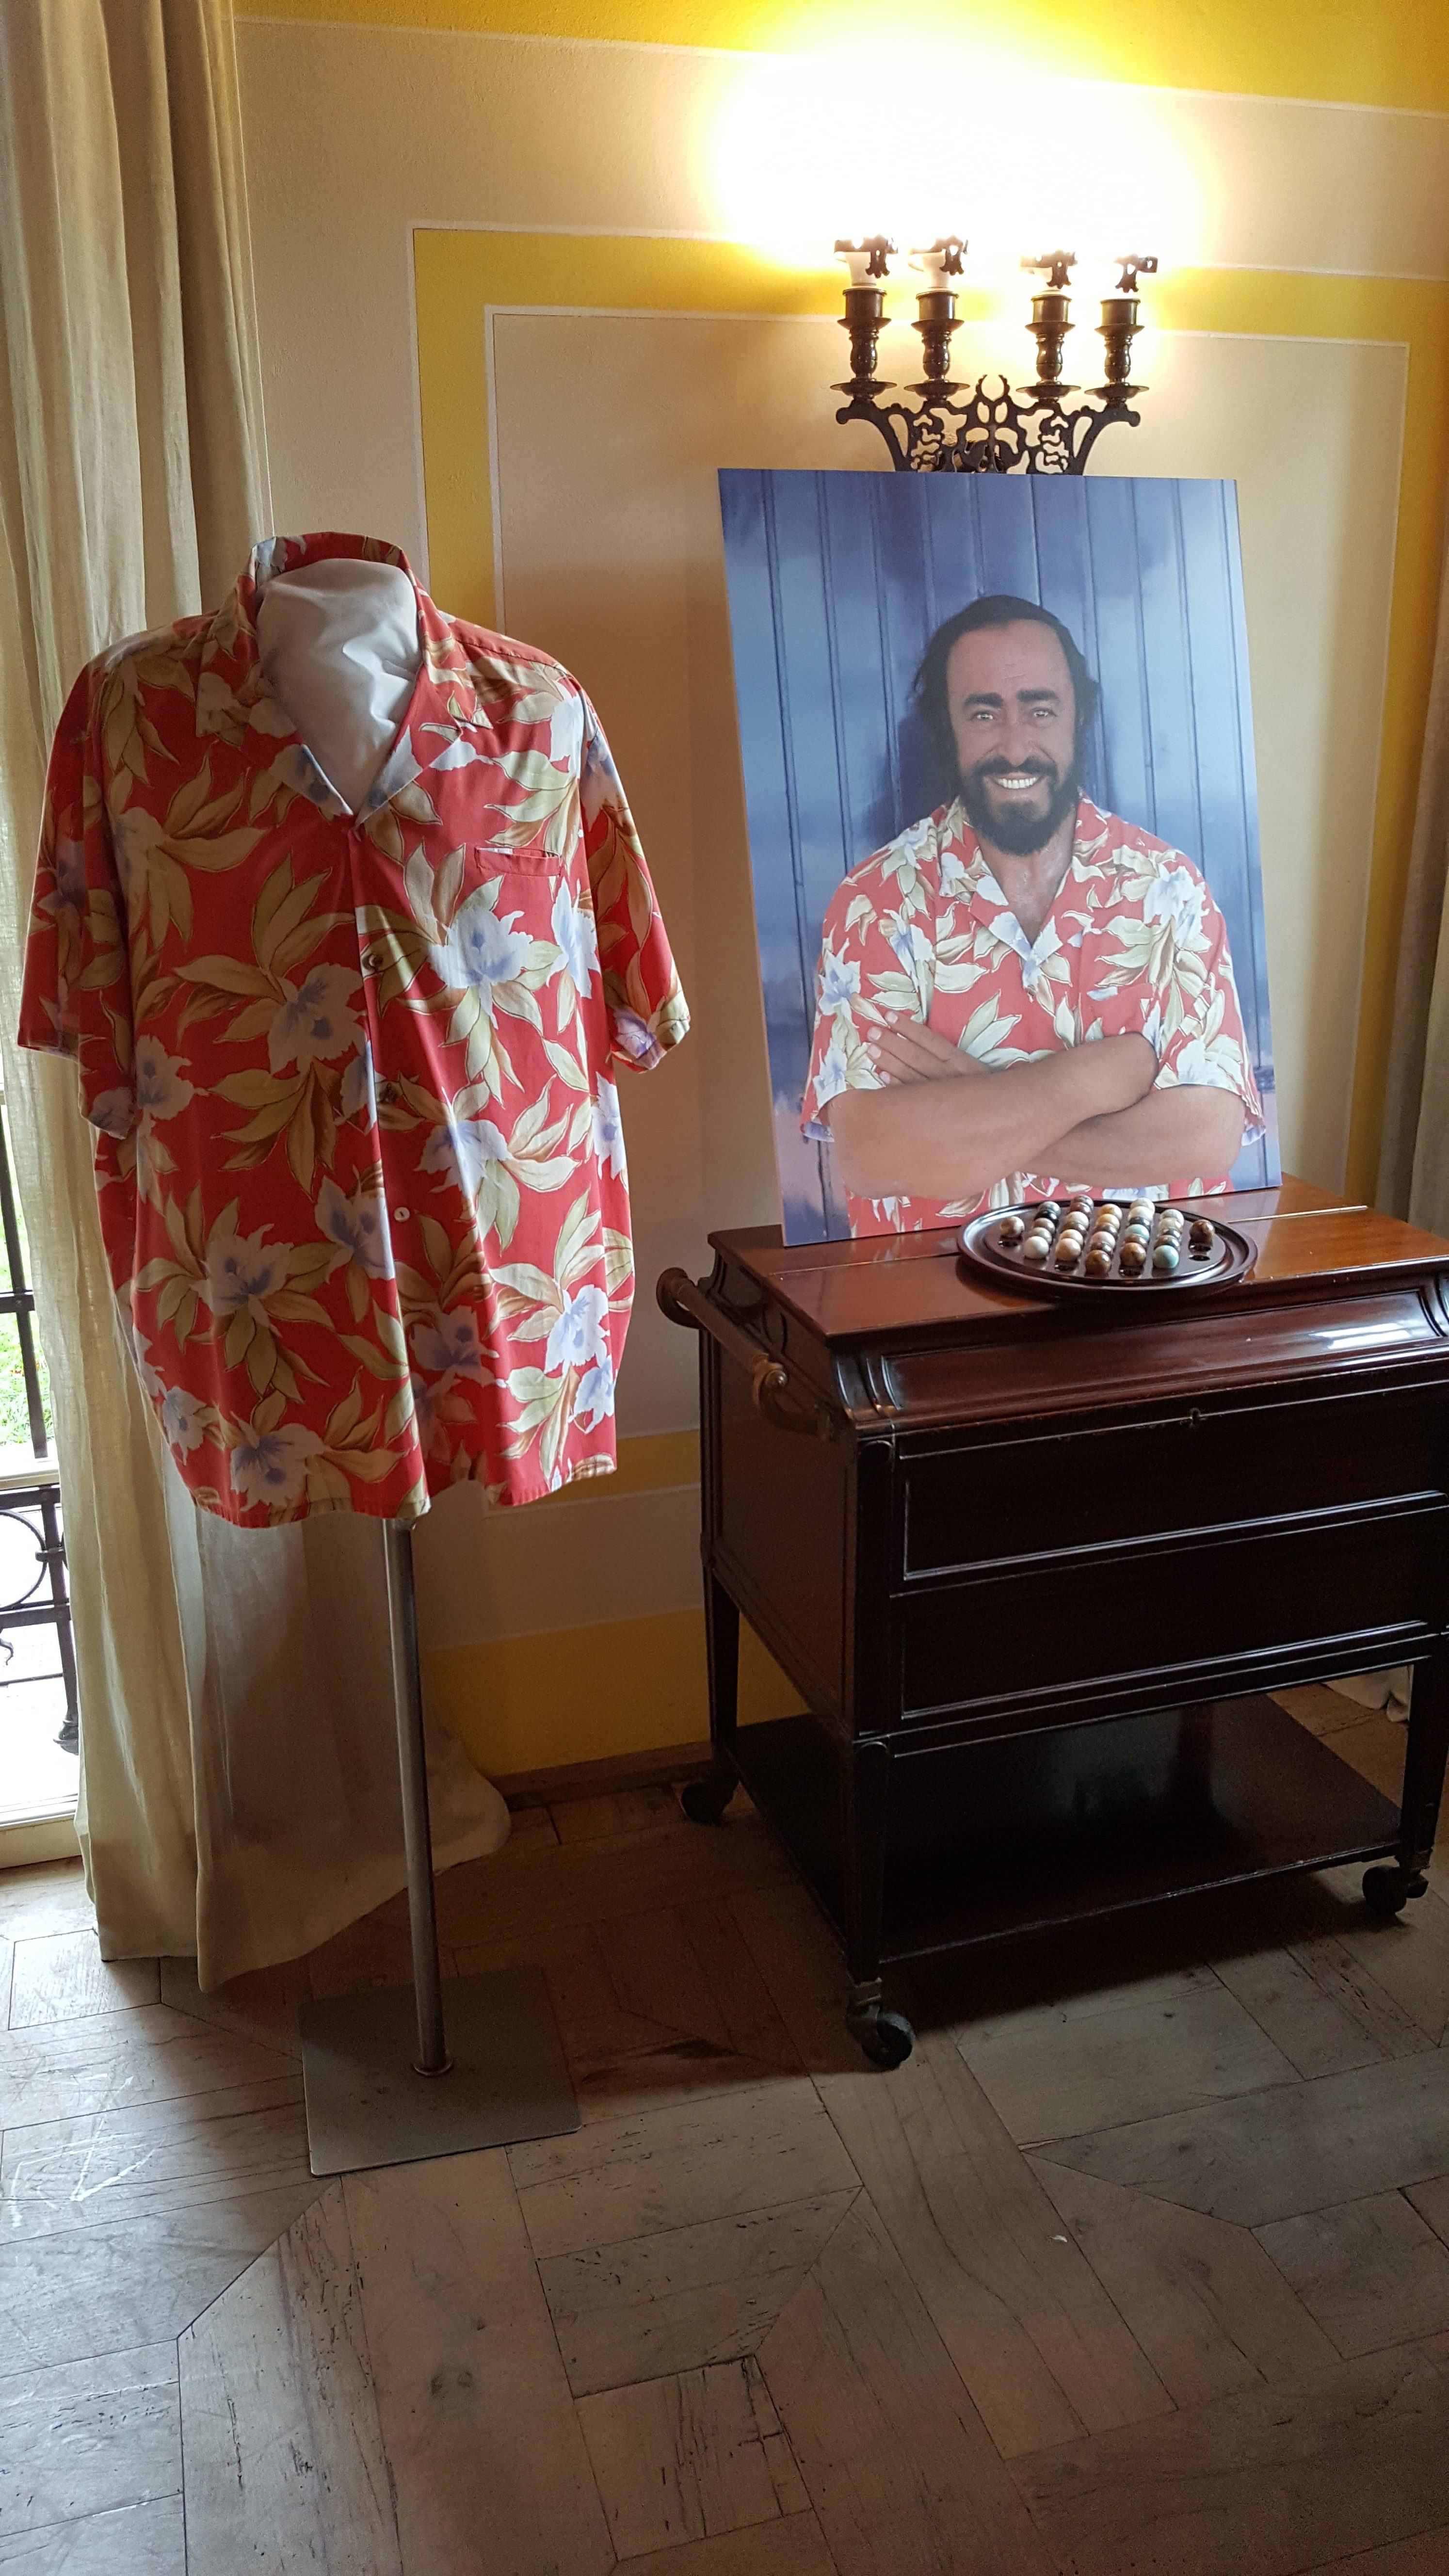 Luciano's flowered shirts